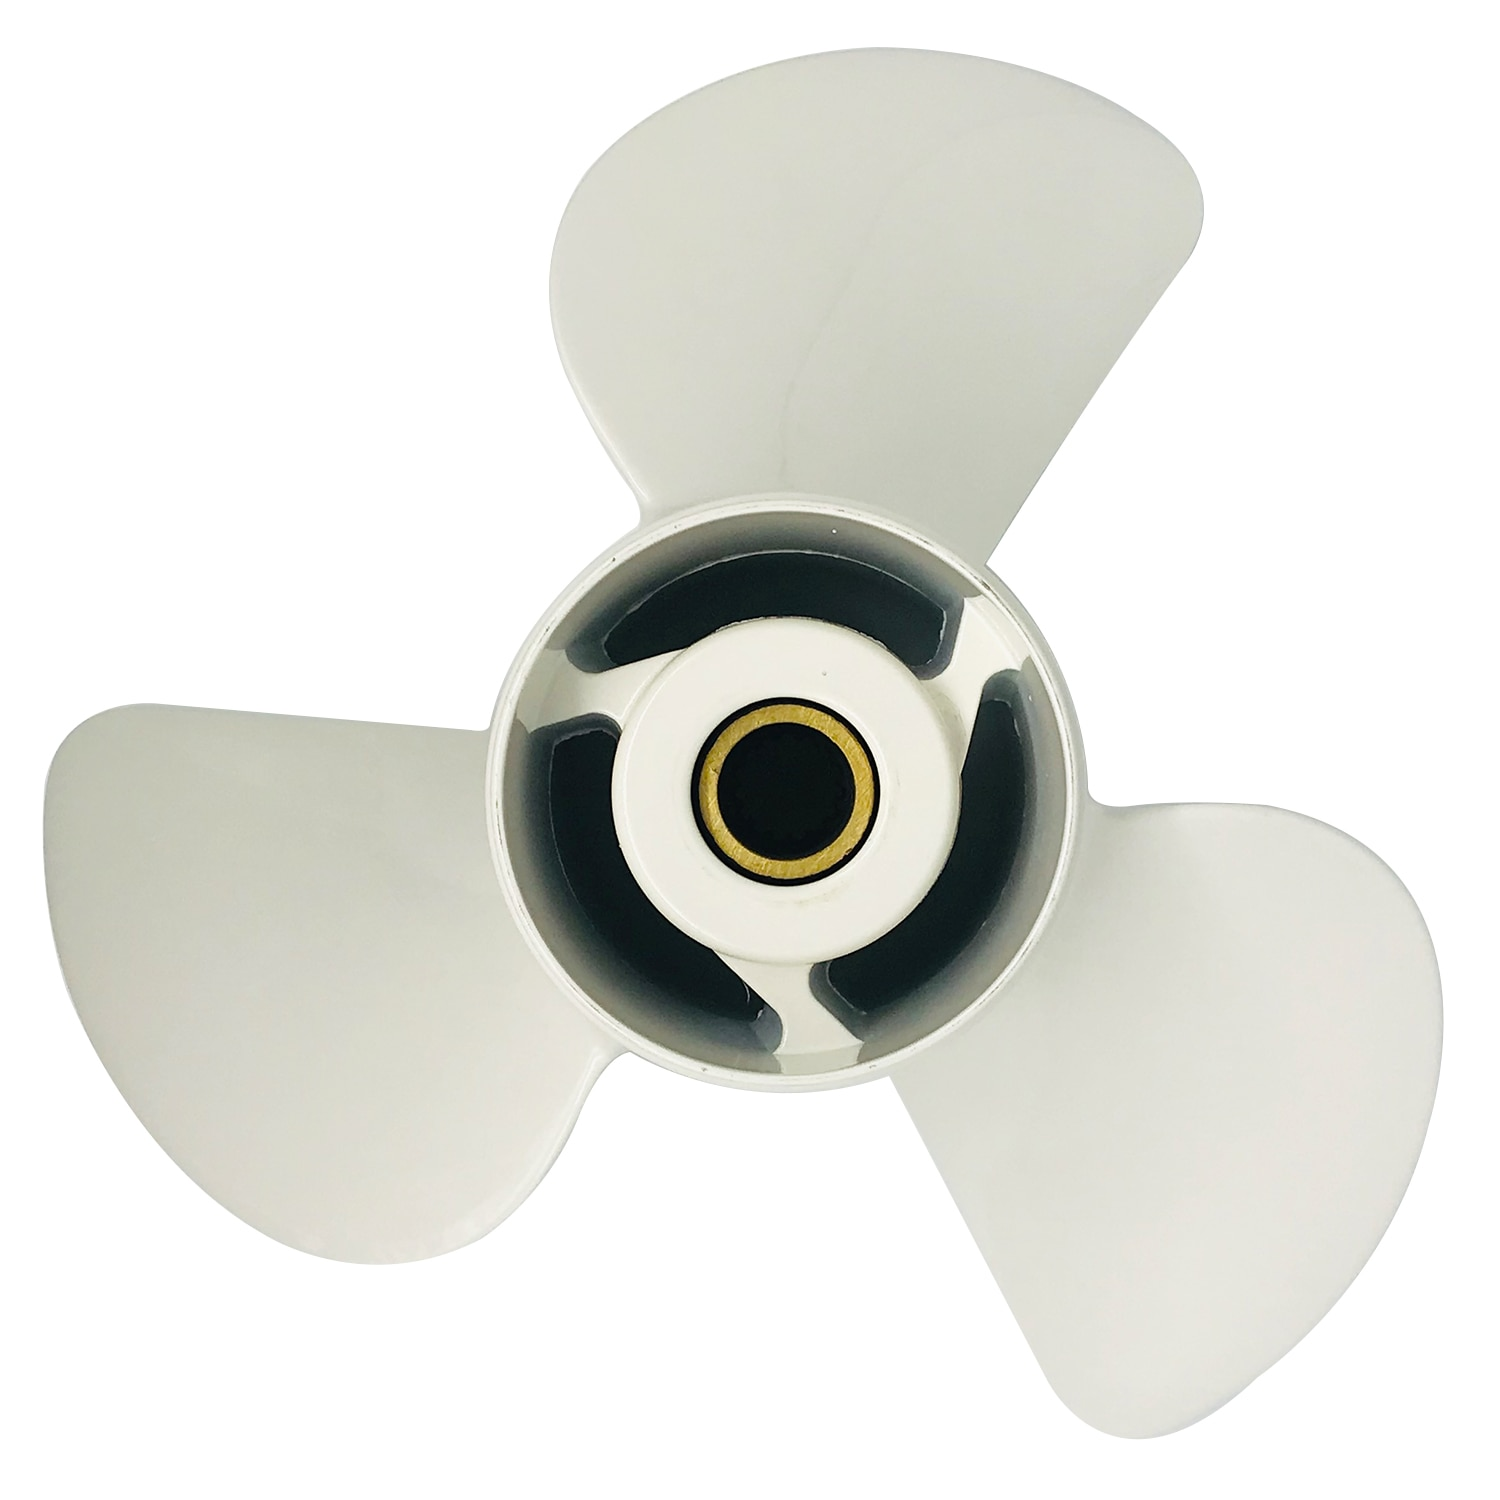 Boat propeller suit for Yamaha 14x19 aluminum prop 50-130HP 3 blade RH 15 tooth enlarge